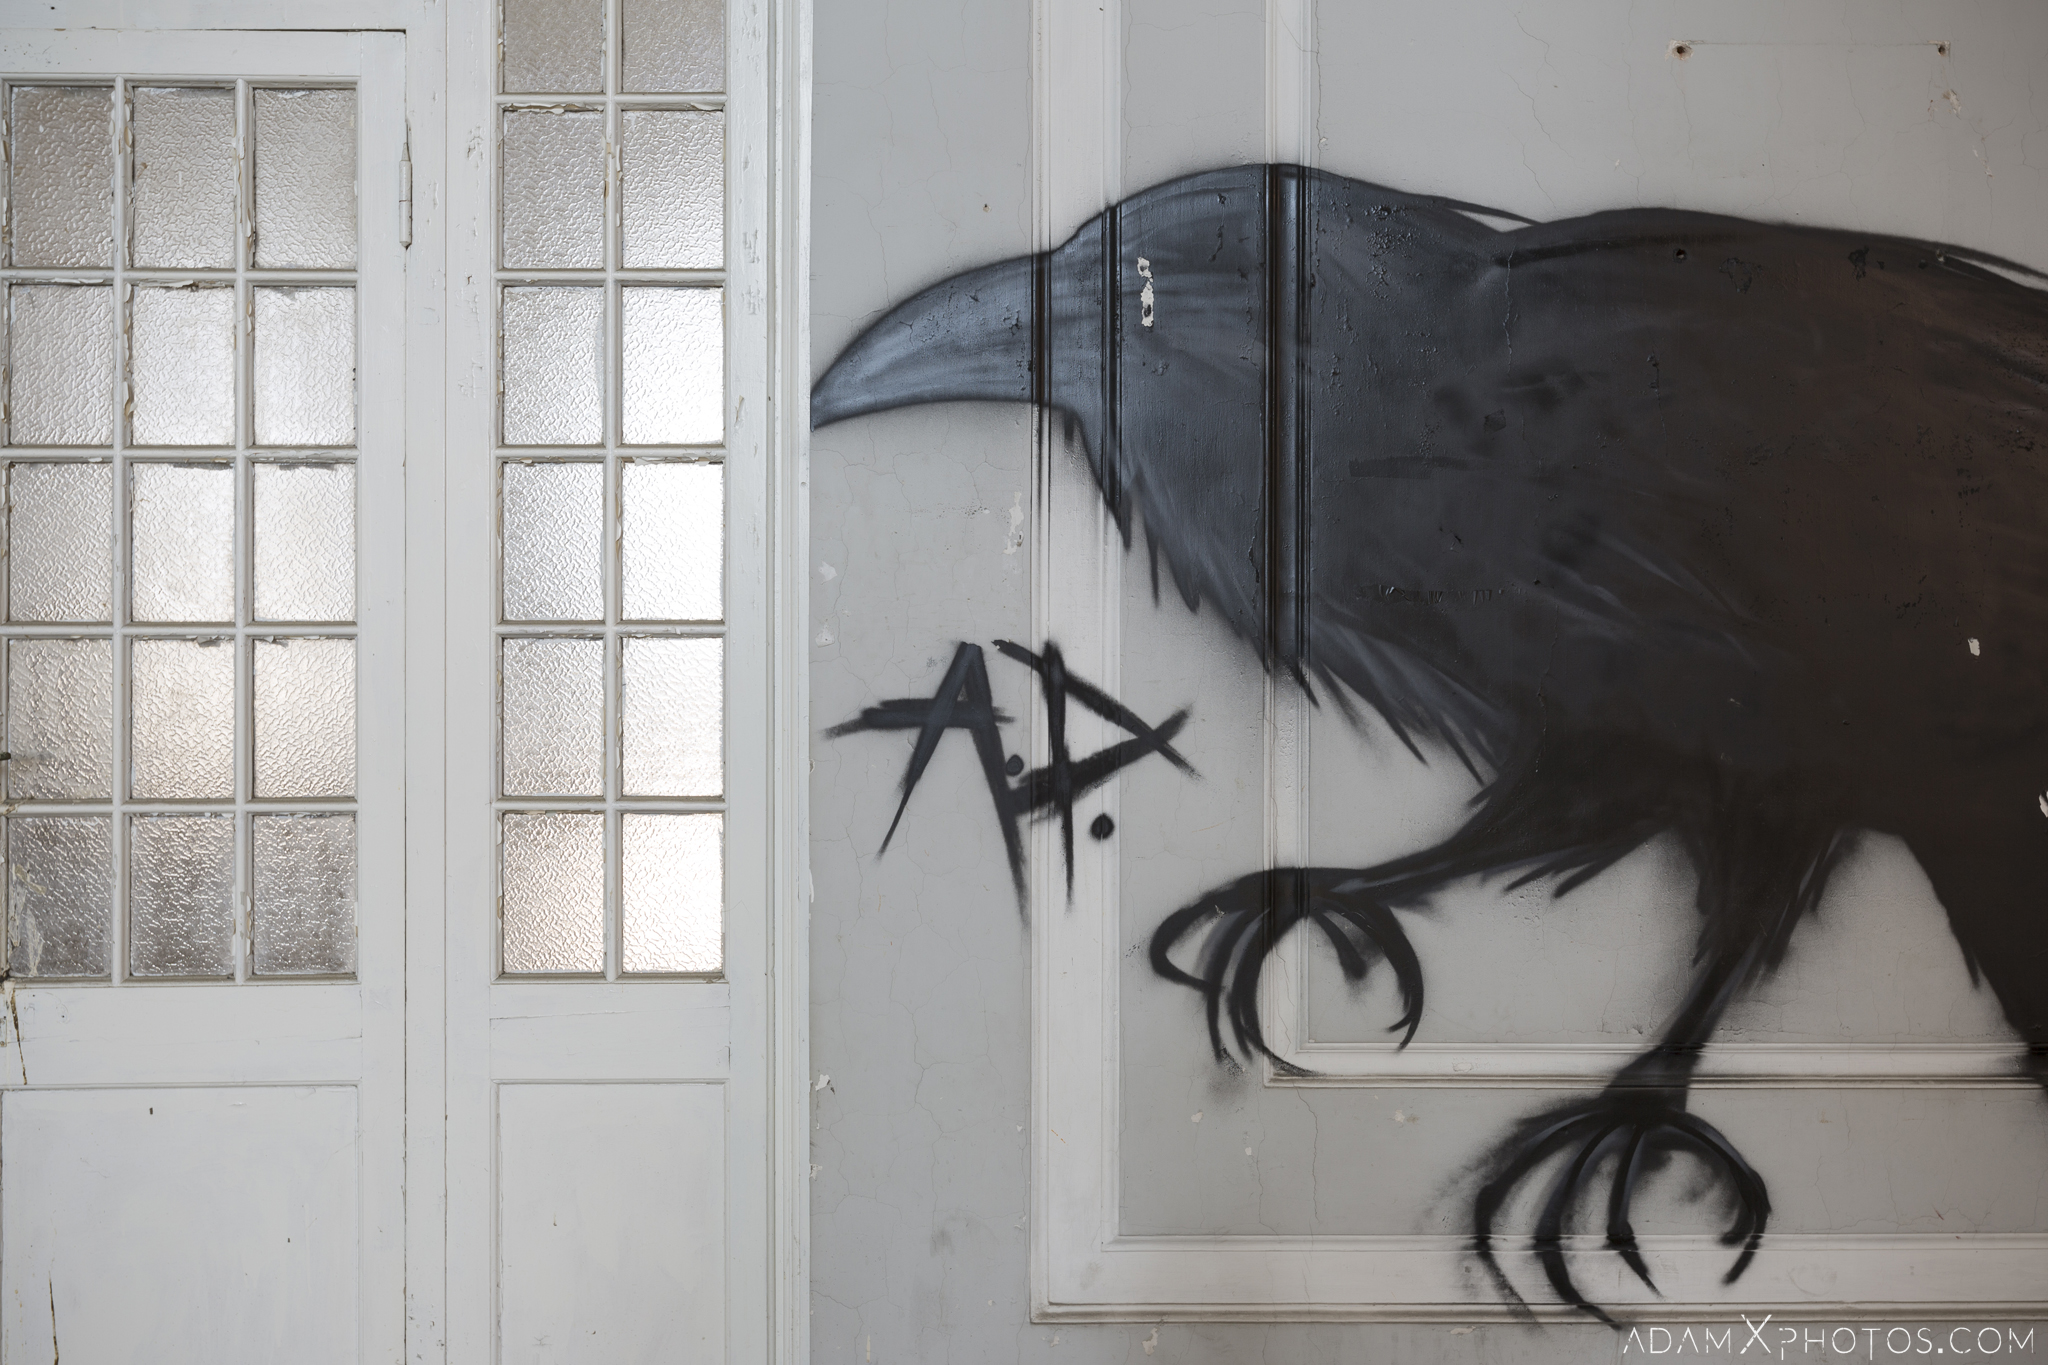 Crow graffiti art ospedale psichiatrico di q manicomio di q asylum hospital Urbex Adam X Urban Exploration Italy Italia Access 2016 Abandoned decay lost forgotten Secca Security infiltration derelict location creepy haunting eerie